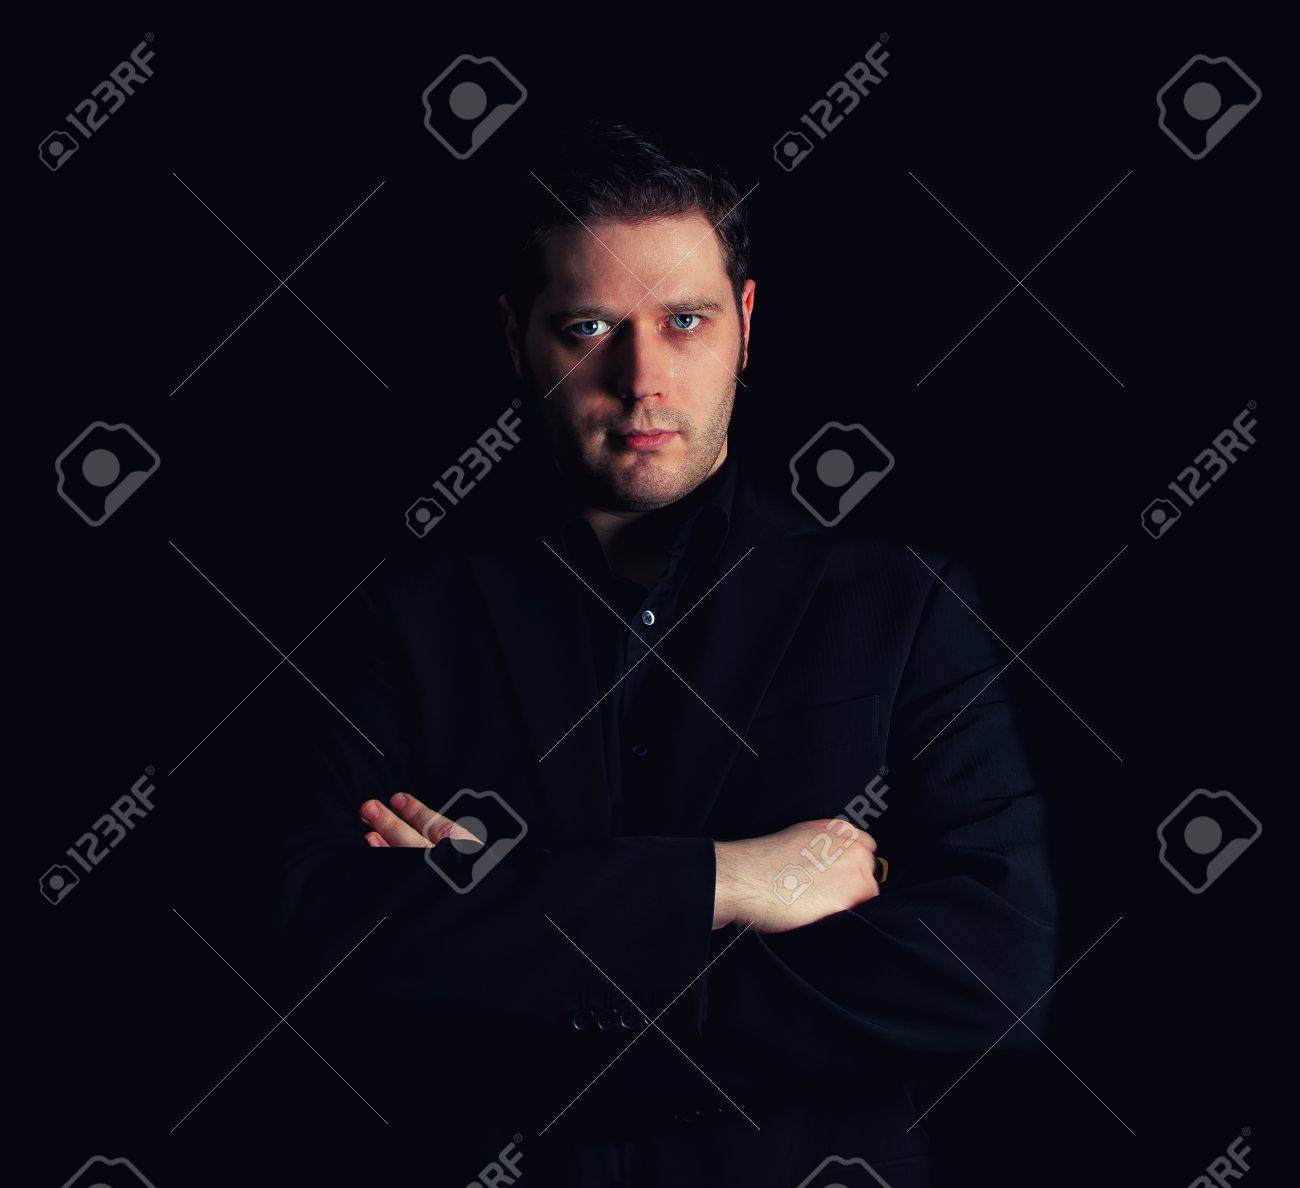 Portrait of man in black suit with crossed arms Stock Photo - 16763512